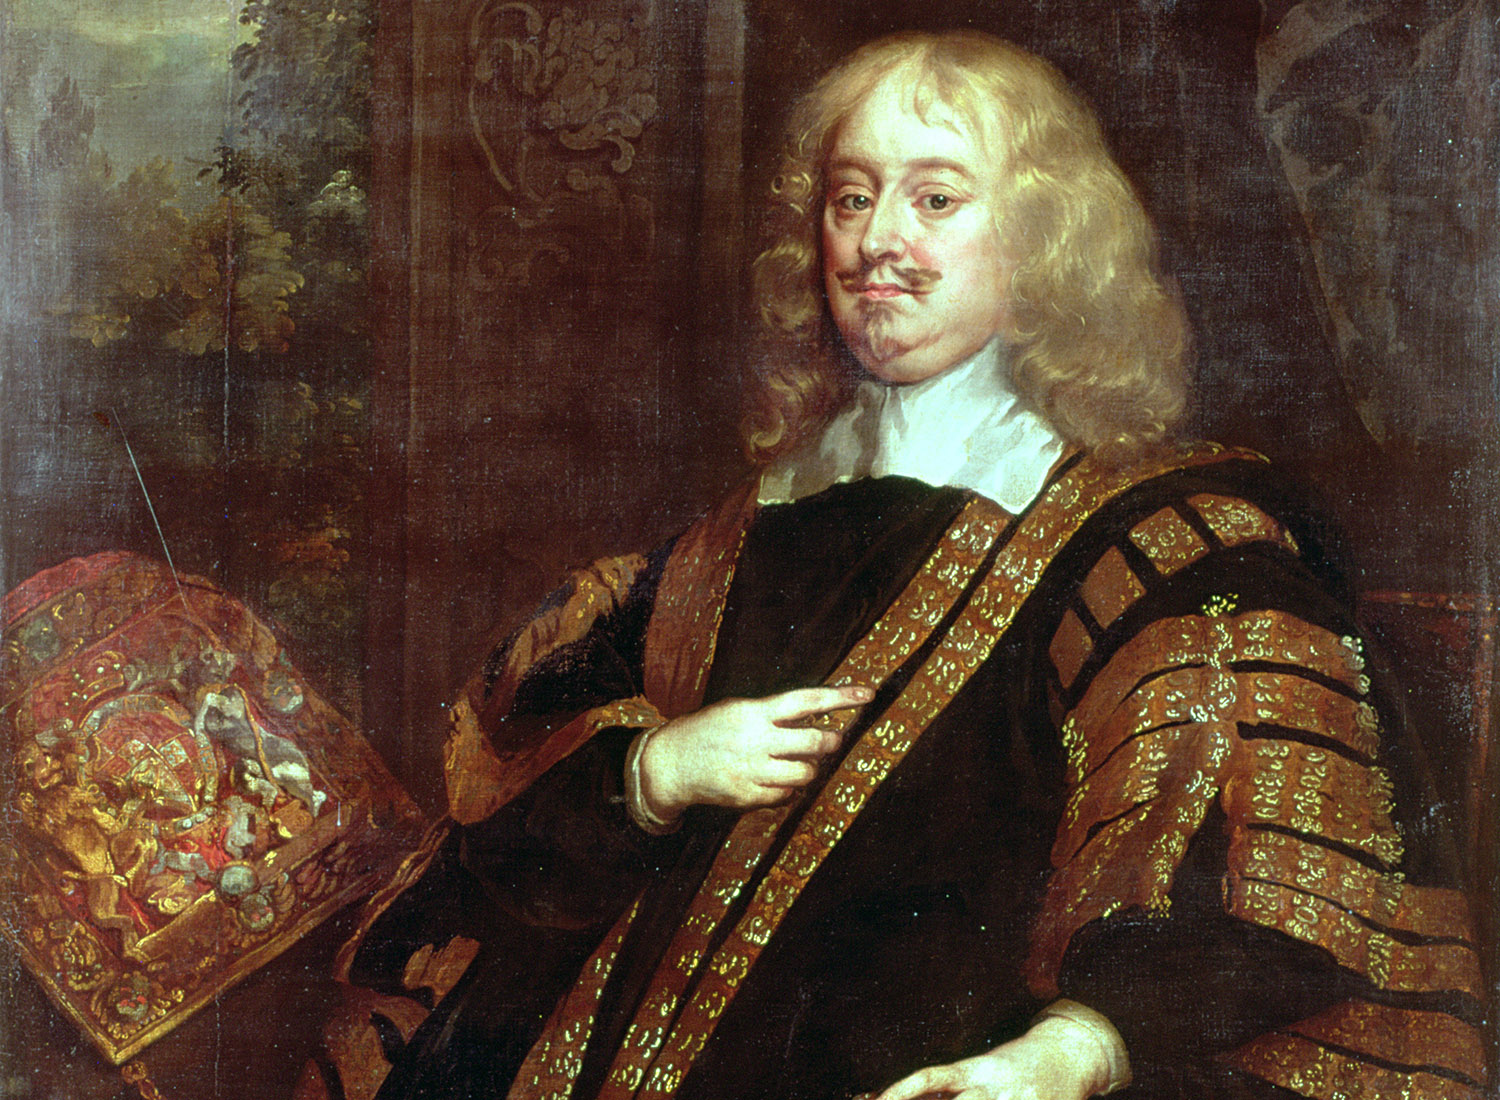 Edward Hyde, Earl of Clarendon as Lord High Chancellor, by Peter Lely, c.1666. Ⓒ Middle Temple London / Bridgeman Images.